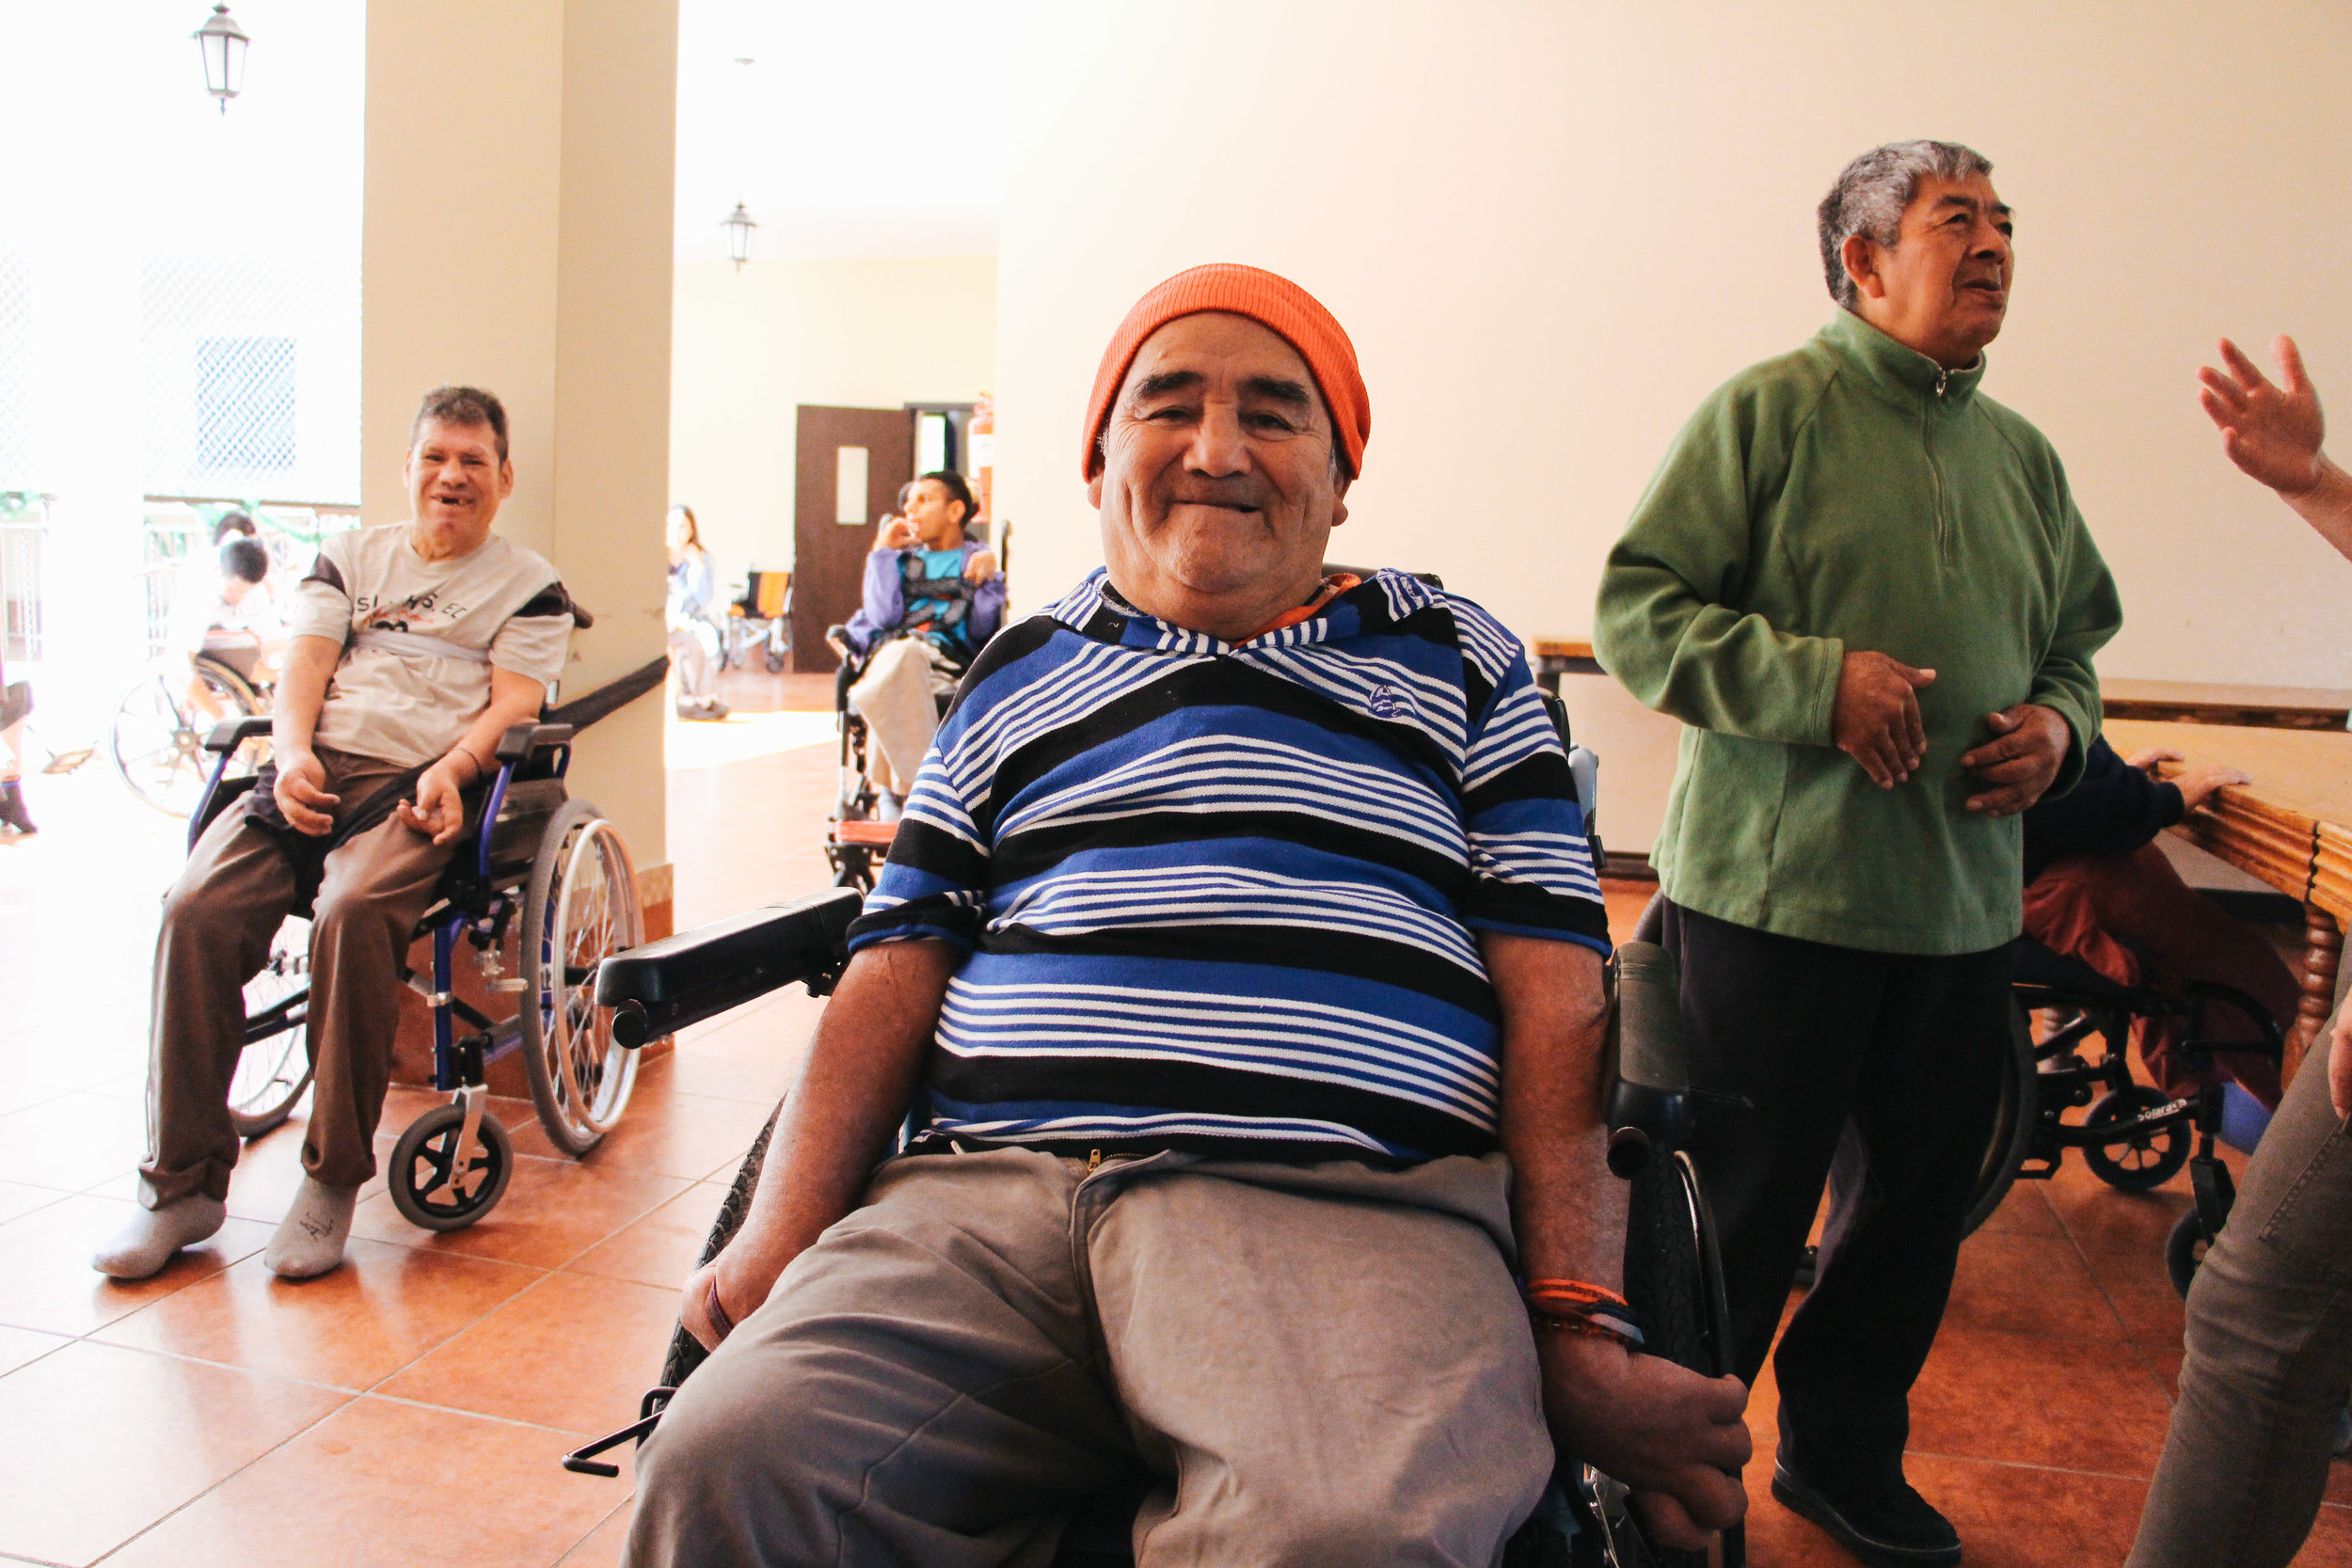 Photo by Miranda Weippert ALFREDO MARIN, 67, POSES FOR THE CAMERA WHILE SITTING NEAR THE DINNER TABLE AT VIRGEN DEL SOCORRO JAN. 16. VIRGEN DEL SOCORRO HAS 239 RESIDENTS, WITH THE CAPABILITY TO HOST 11 MORE.